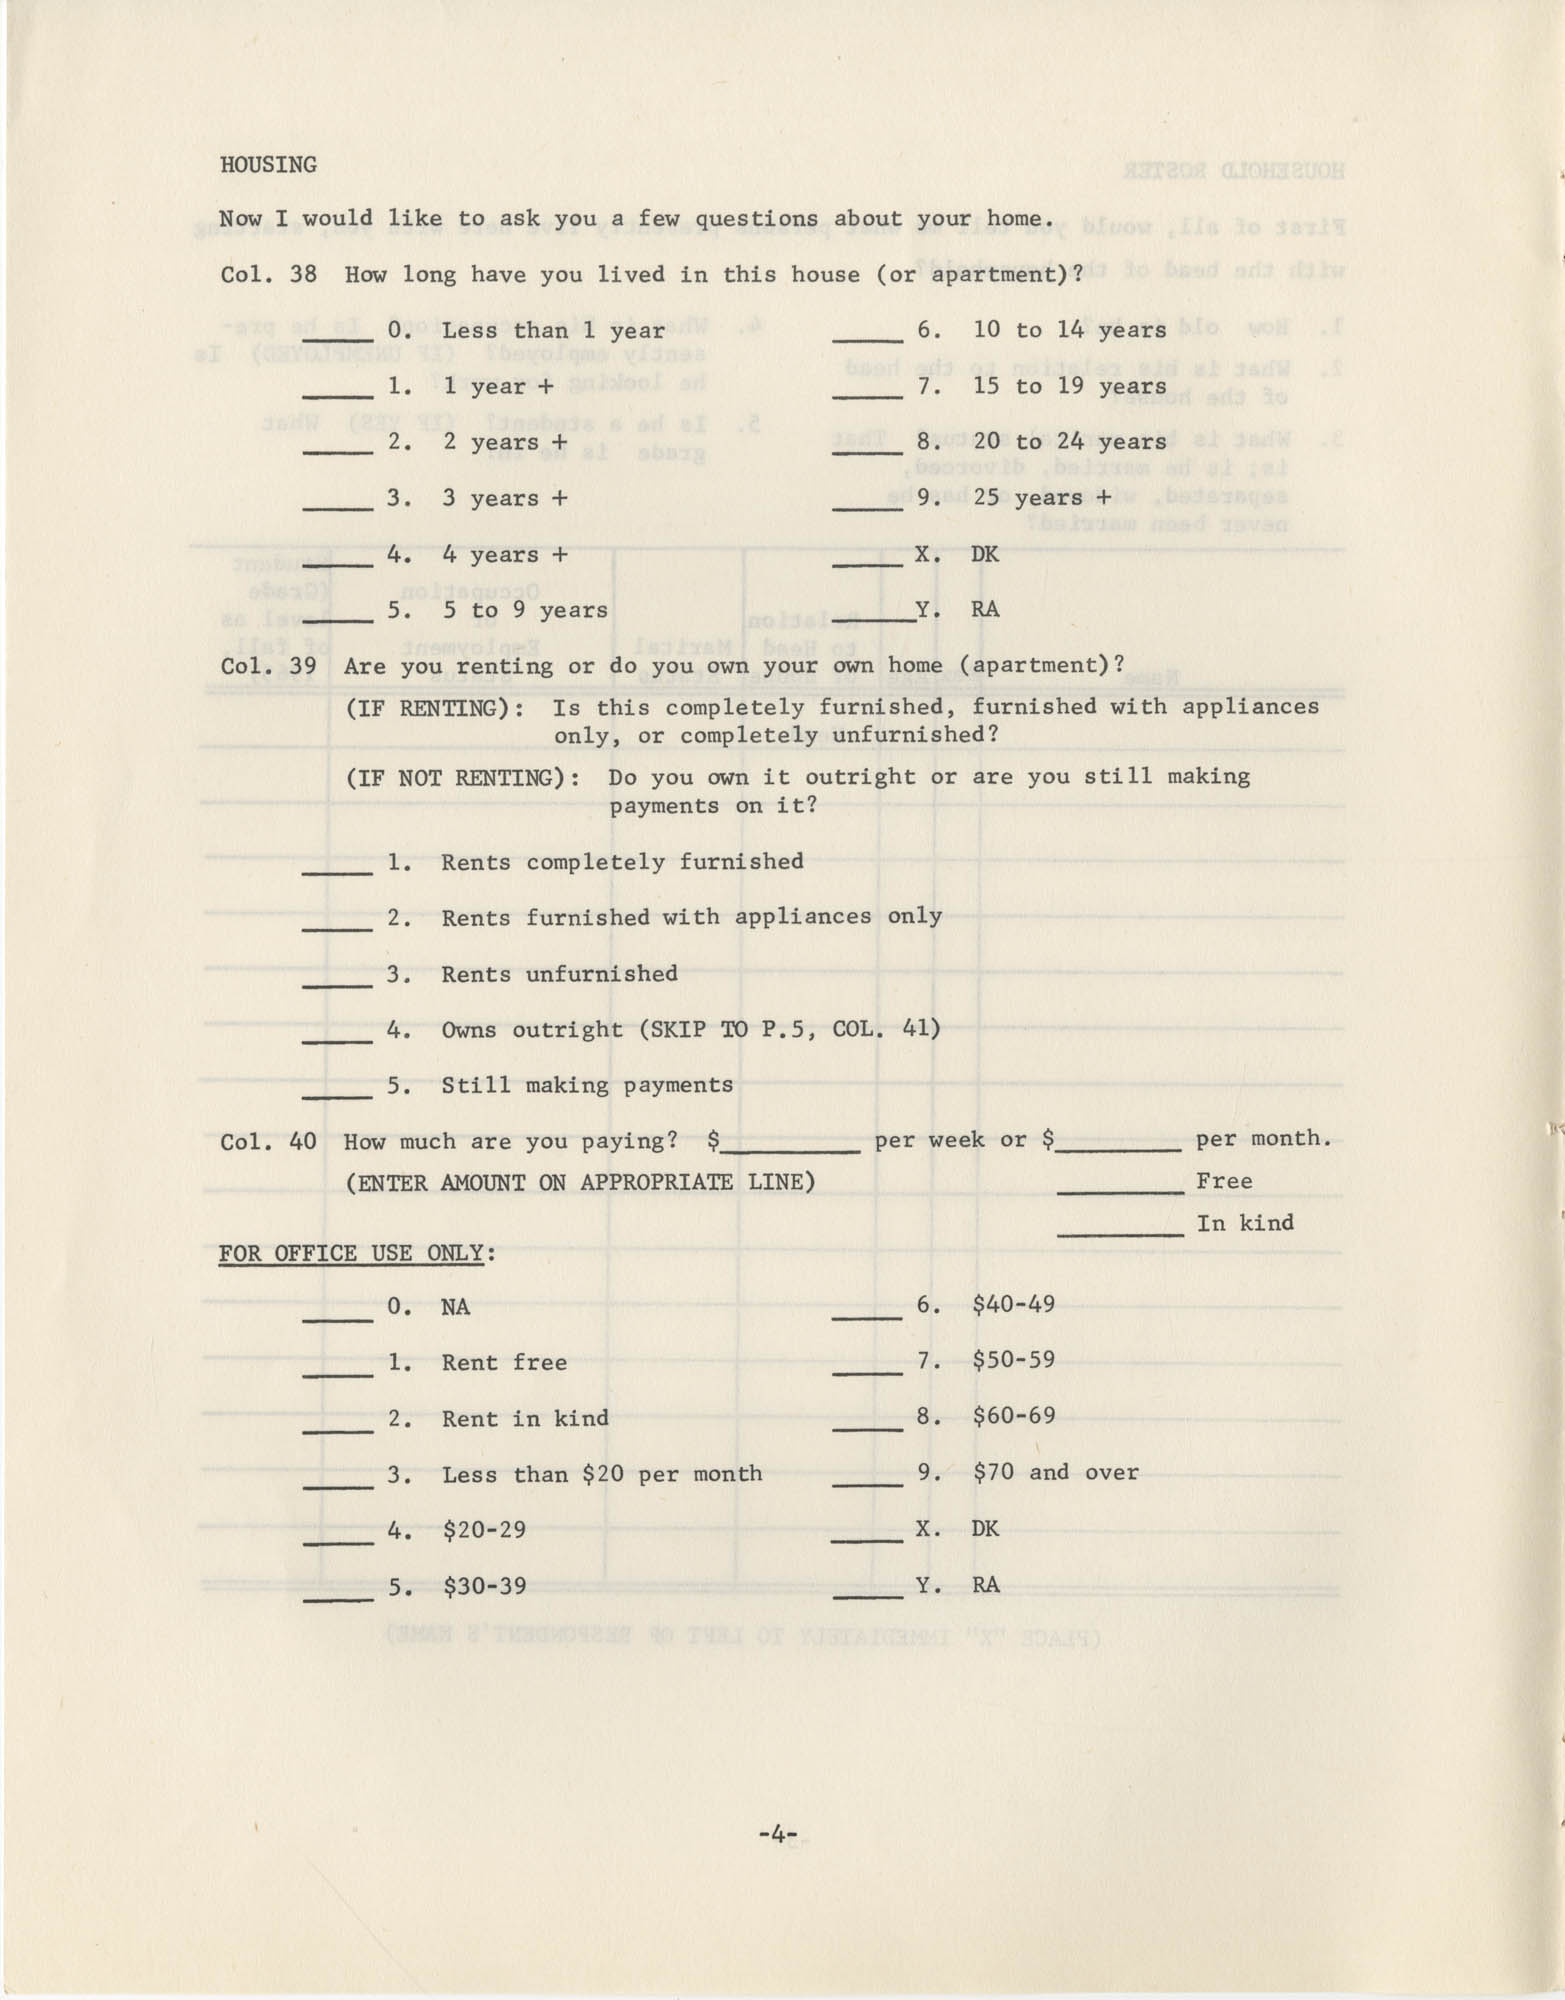 Household Questionnaire, Page 4